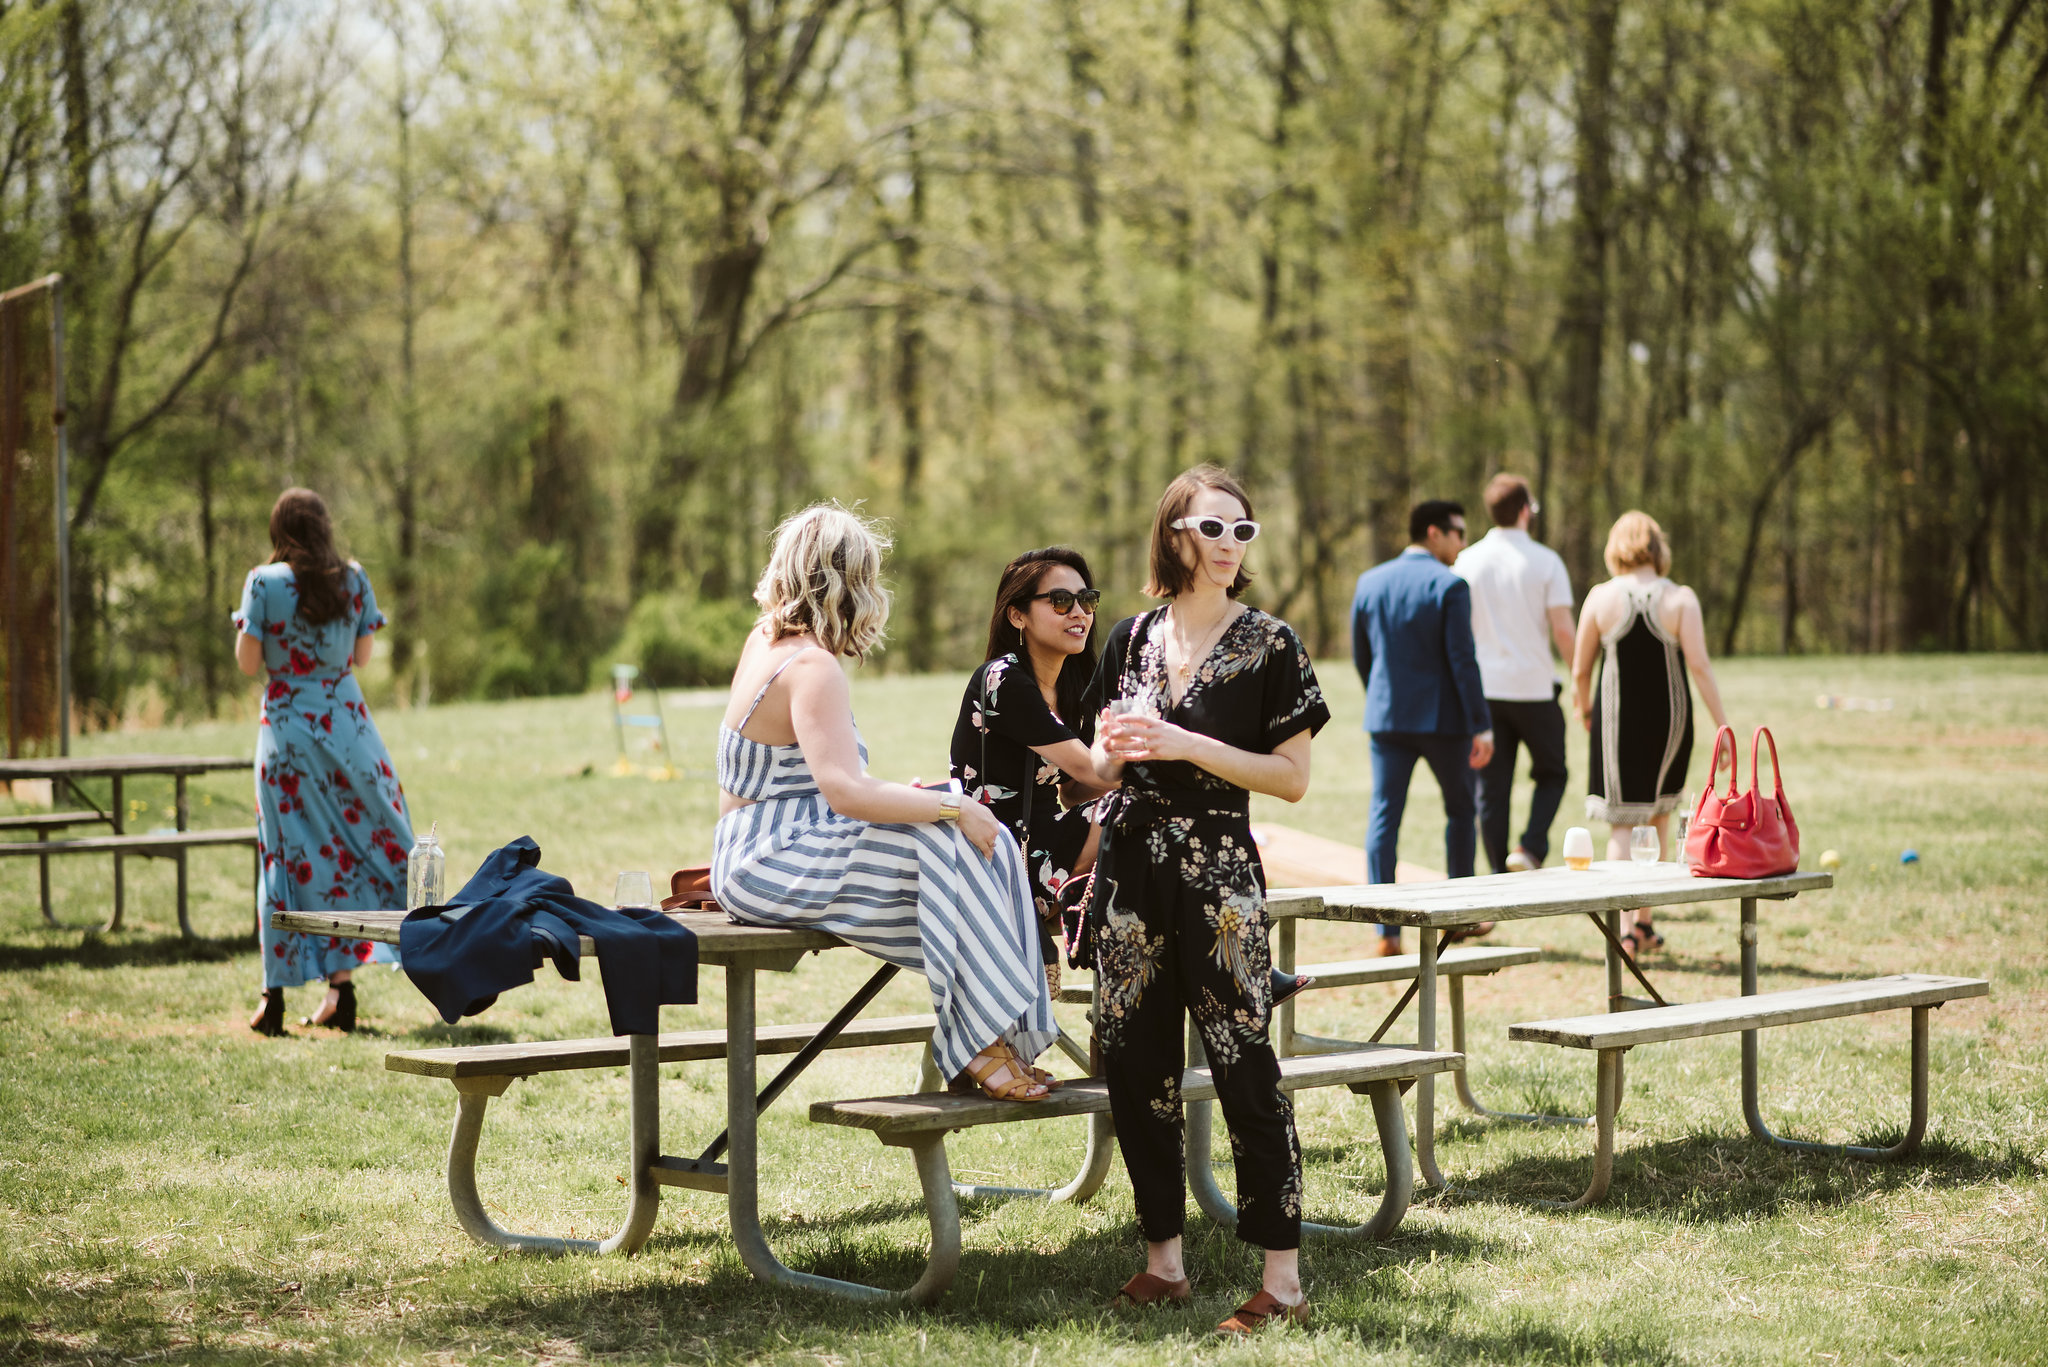 Spring Outdoor Wedding, Park, Baltimore Wedding Photographer, DIY, Classic, Upcycled, Garden Party, Romantic, Wedding Guests at Picnic Table